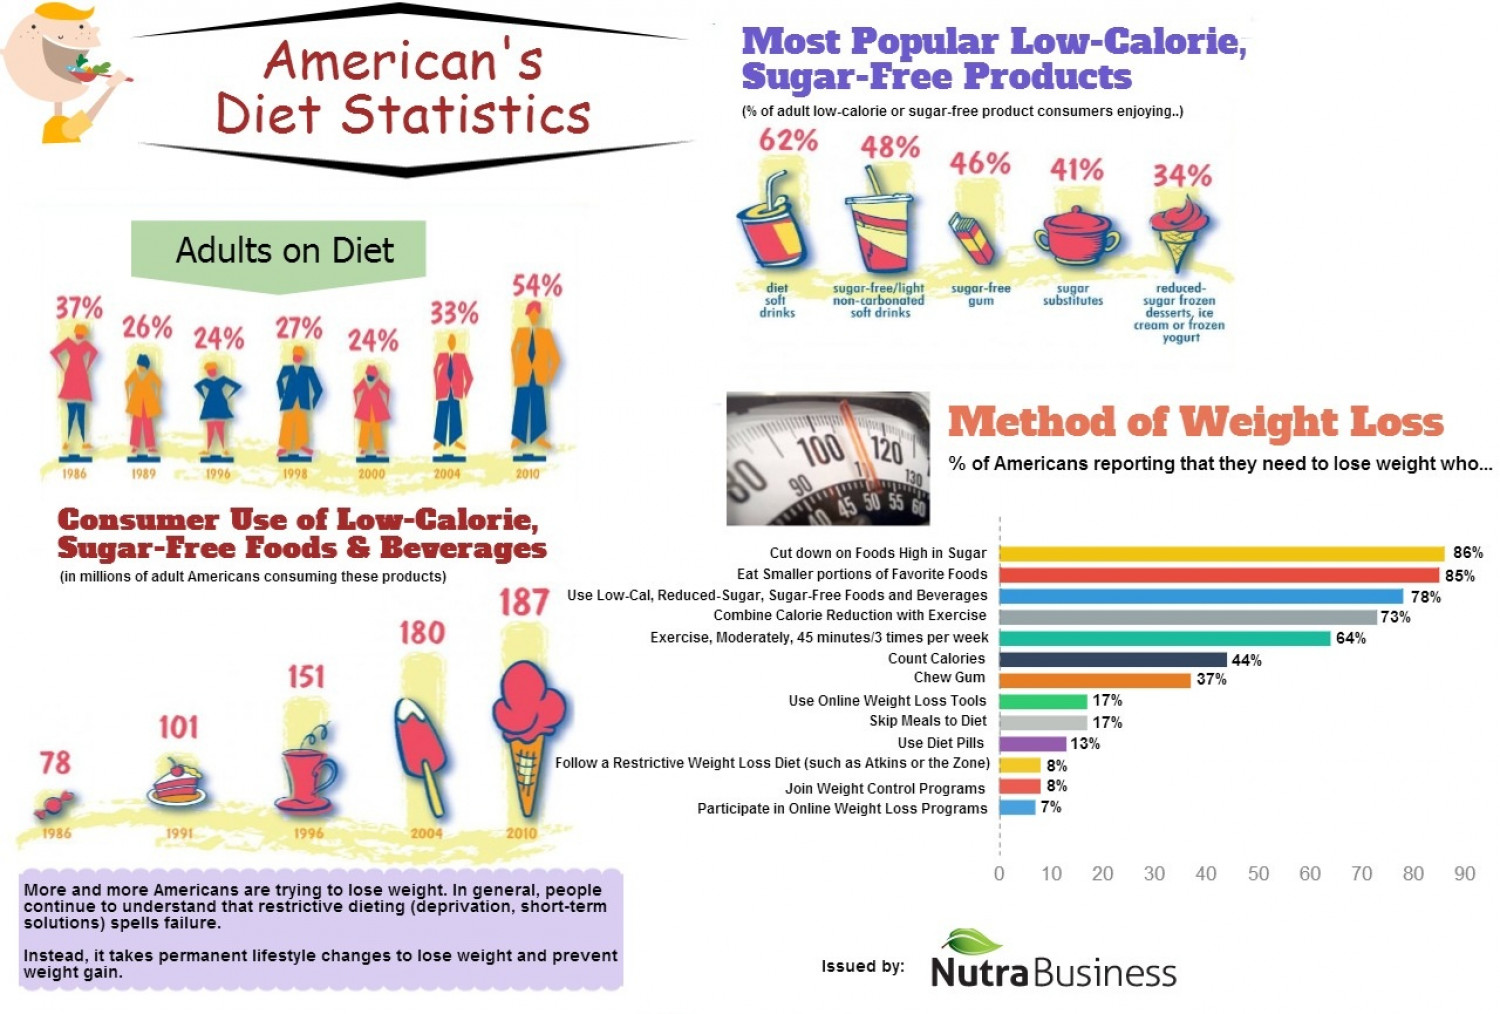 American's Diet Statistics Infographic